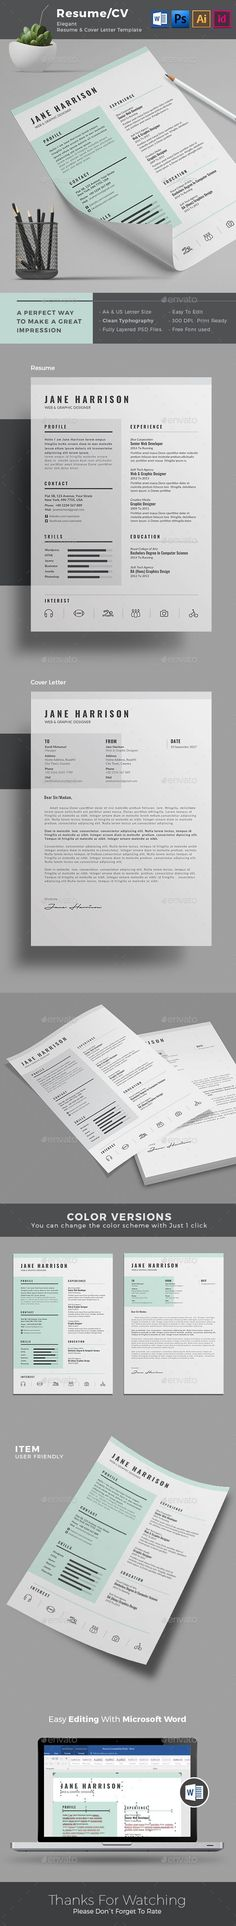 Minimal Resume Template Design   A4 & US Letter Size   Indesign + IDML + PSD + AI + MS Word   Multiple Color Versions to suite your taste   Download Now - https://graphicriver.net/item/resume/17964957?ref=themedevisers